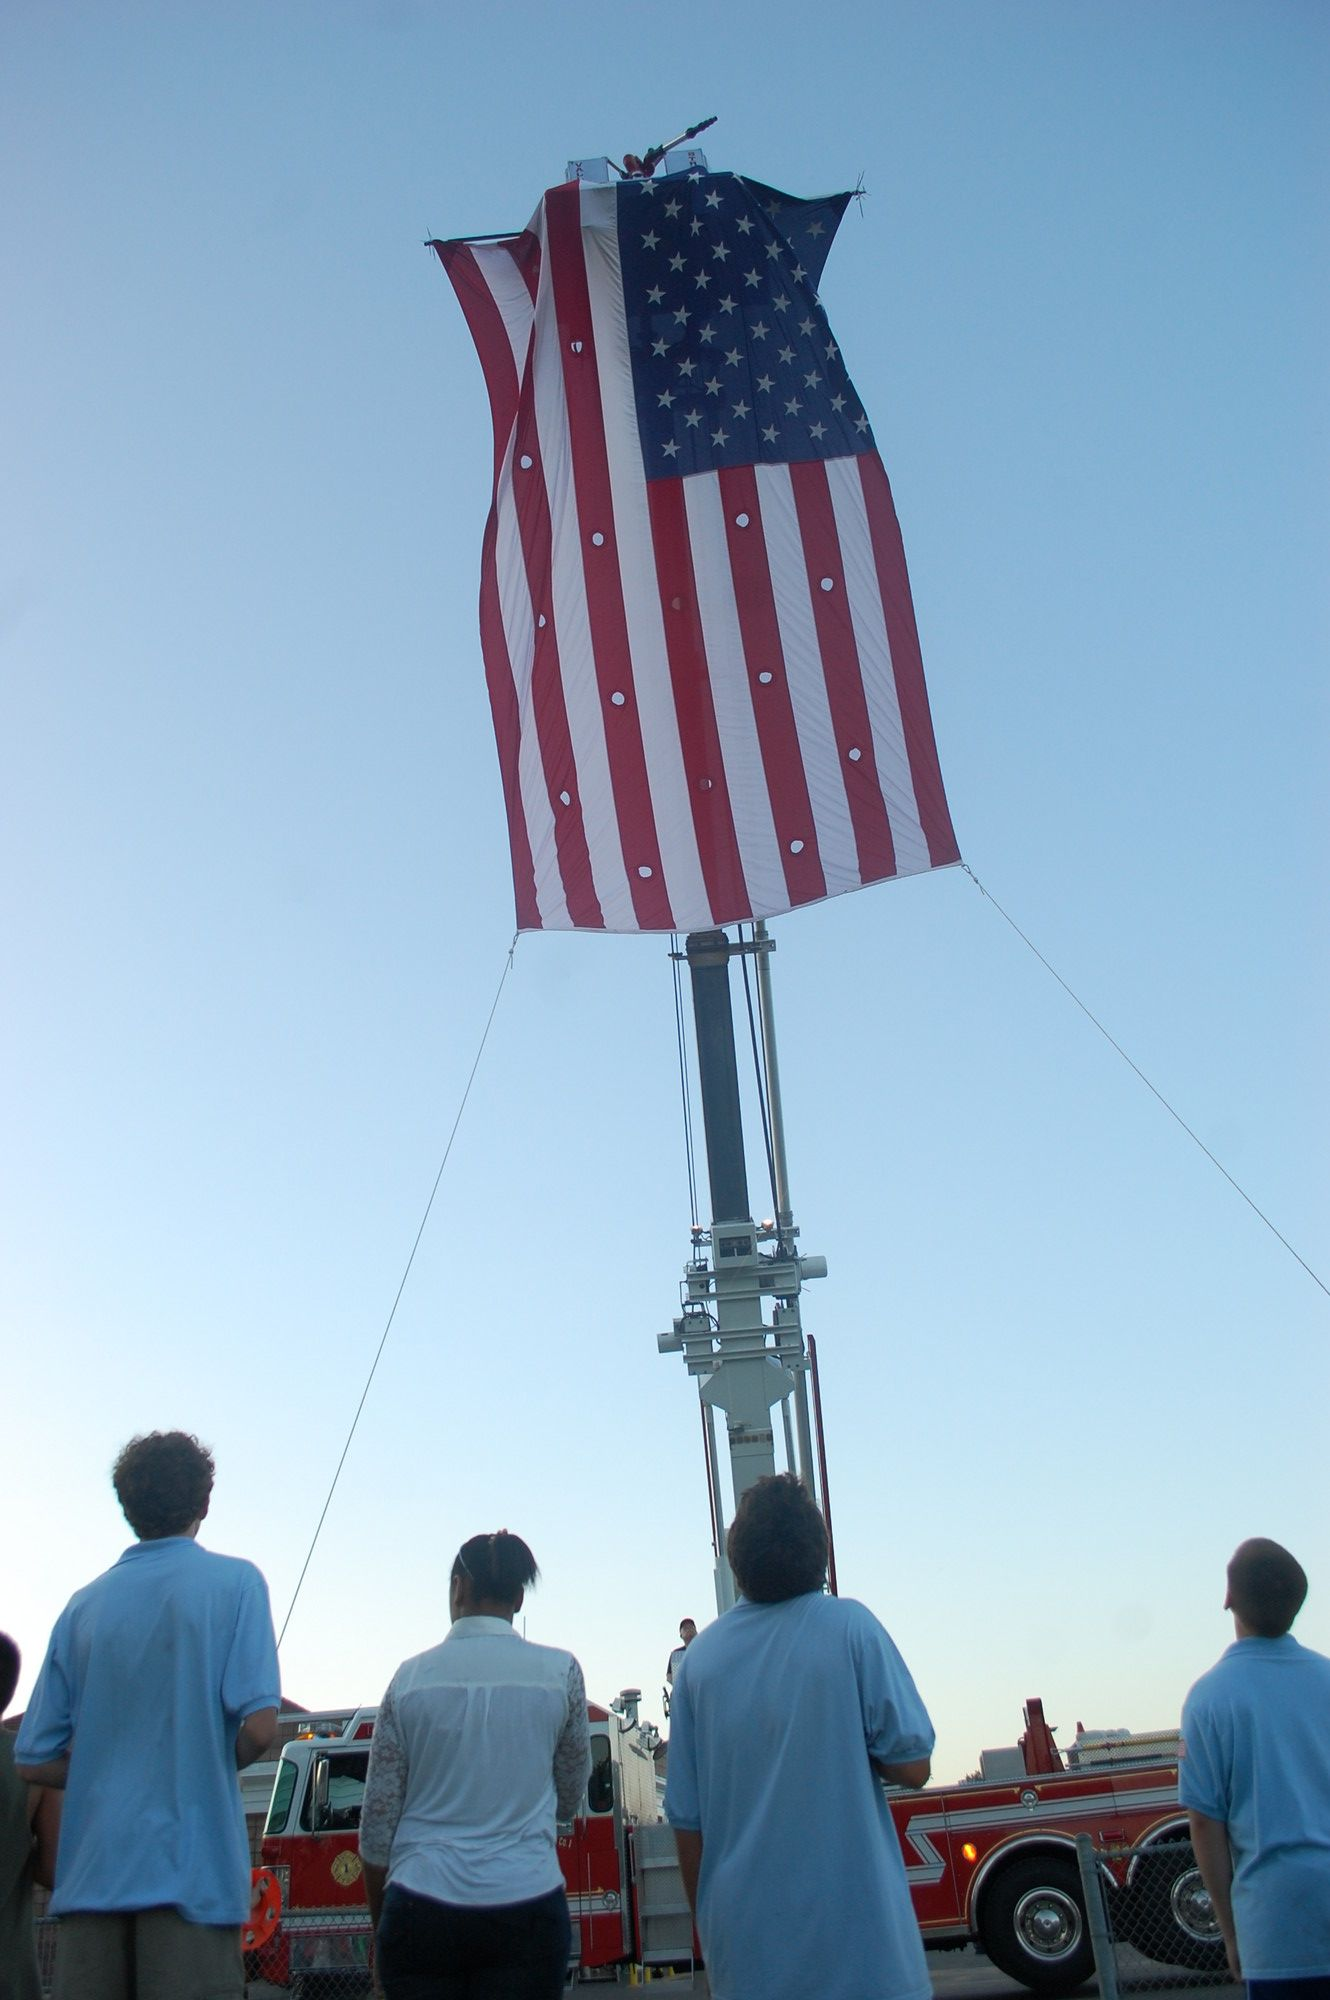 The Junior Fire Department helped raise the flag for the playing of the National Anthem.